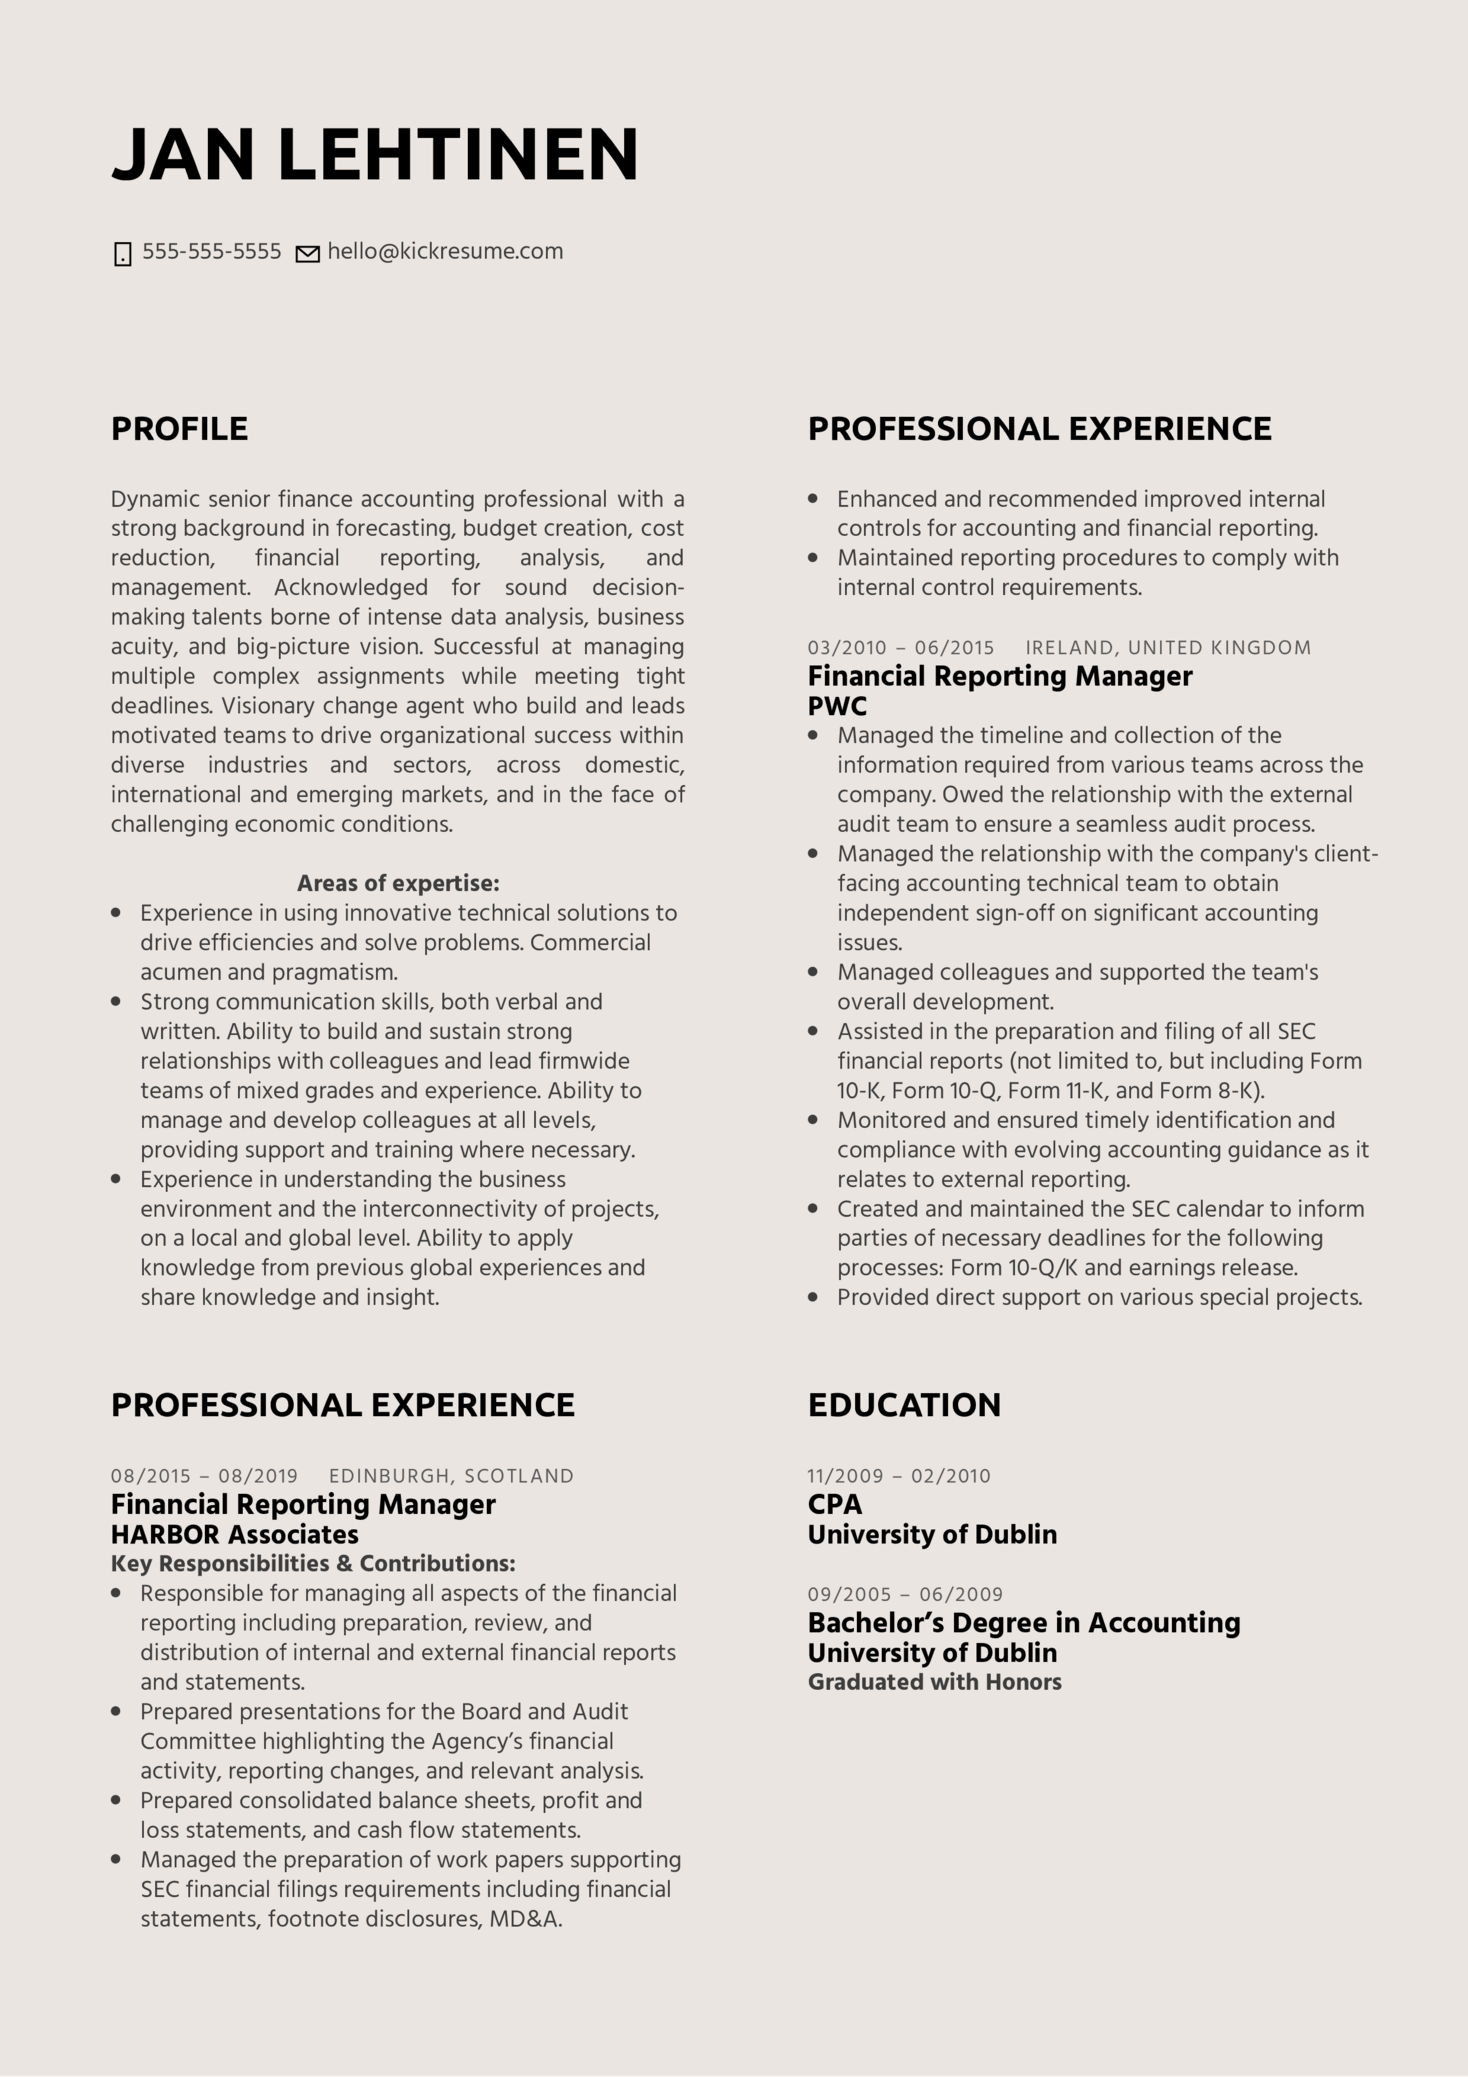 Financial Reporting Manager Resume Example (Parte 1)